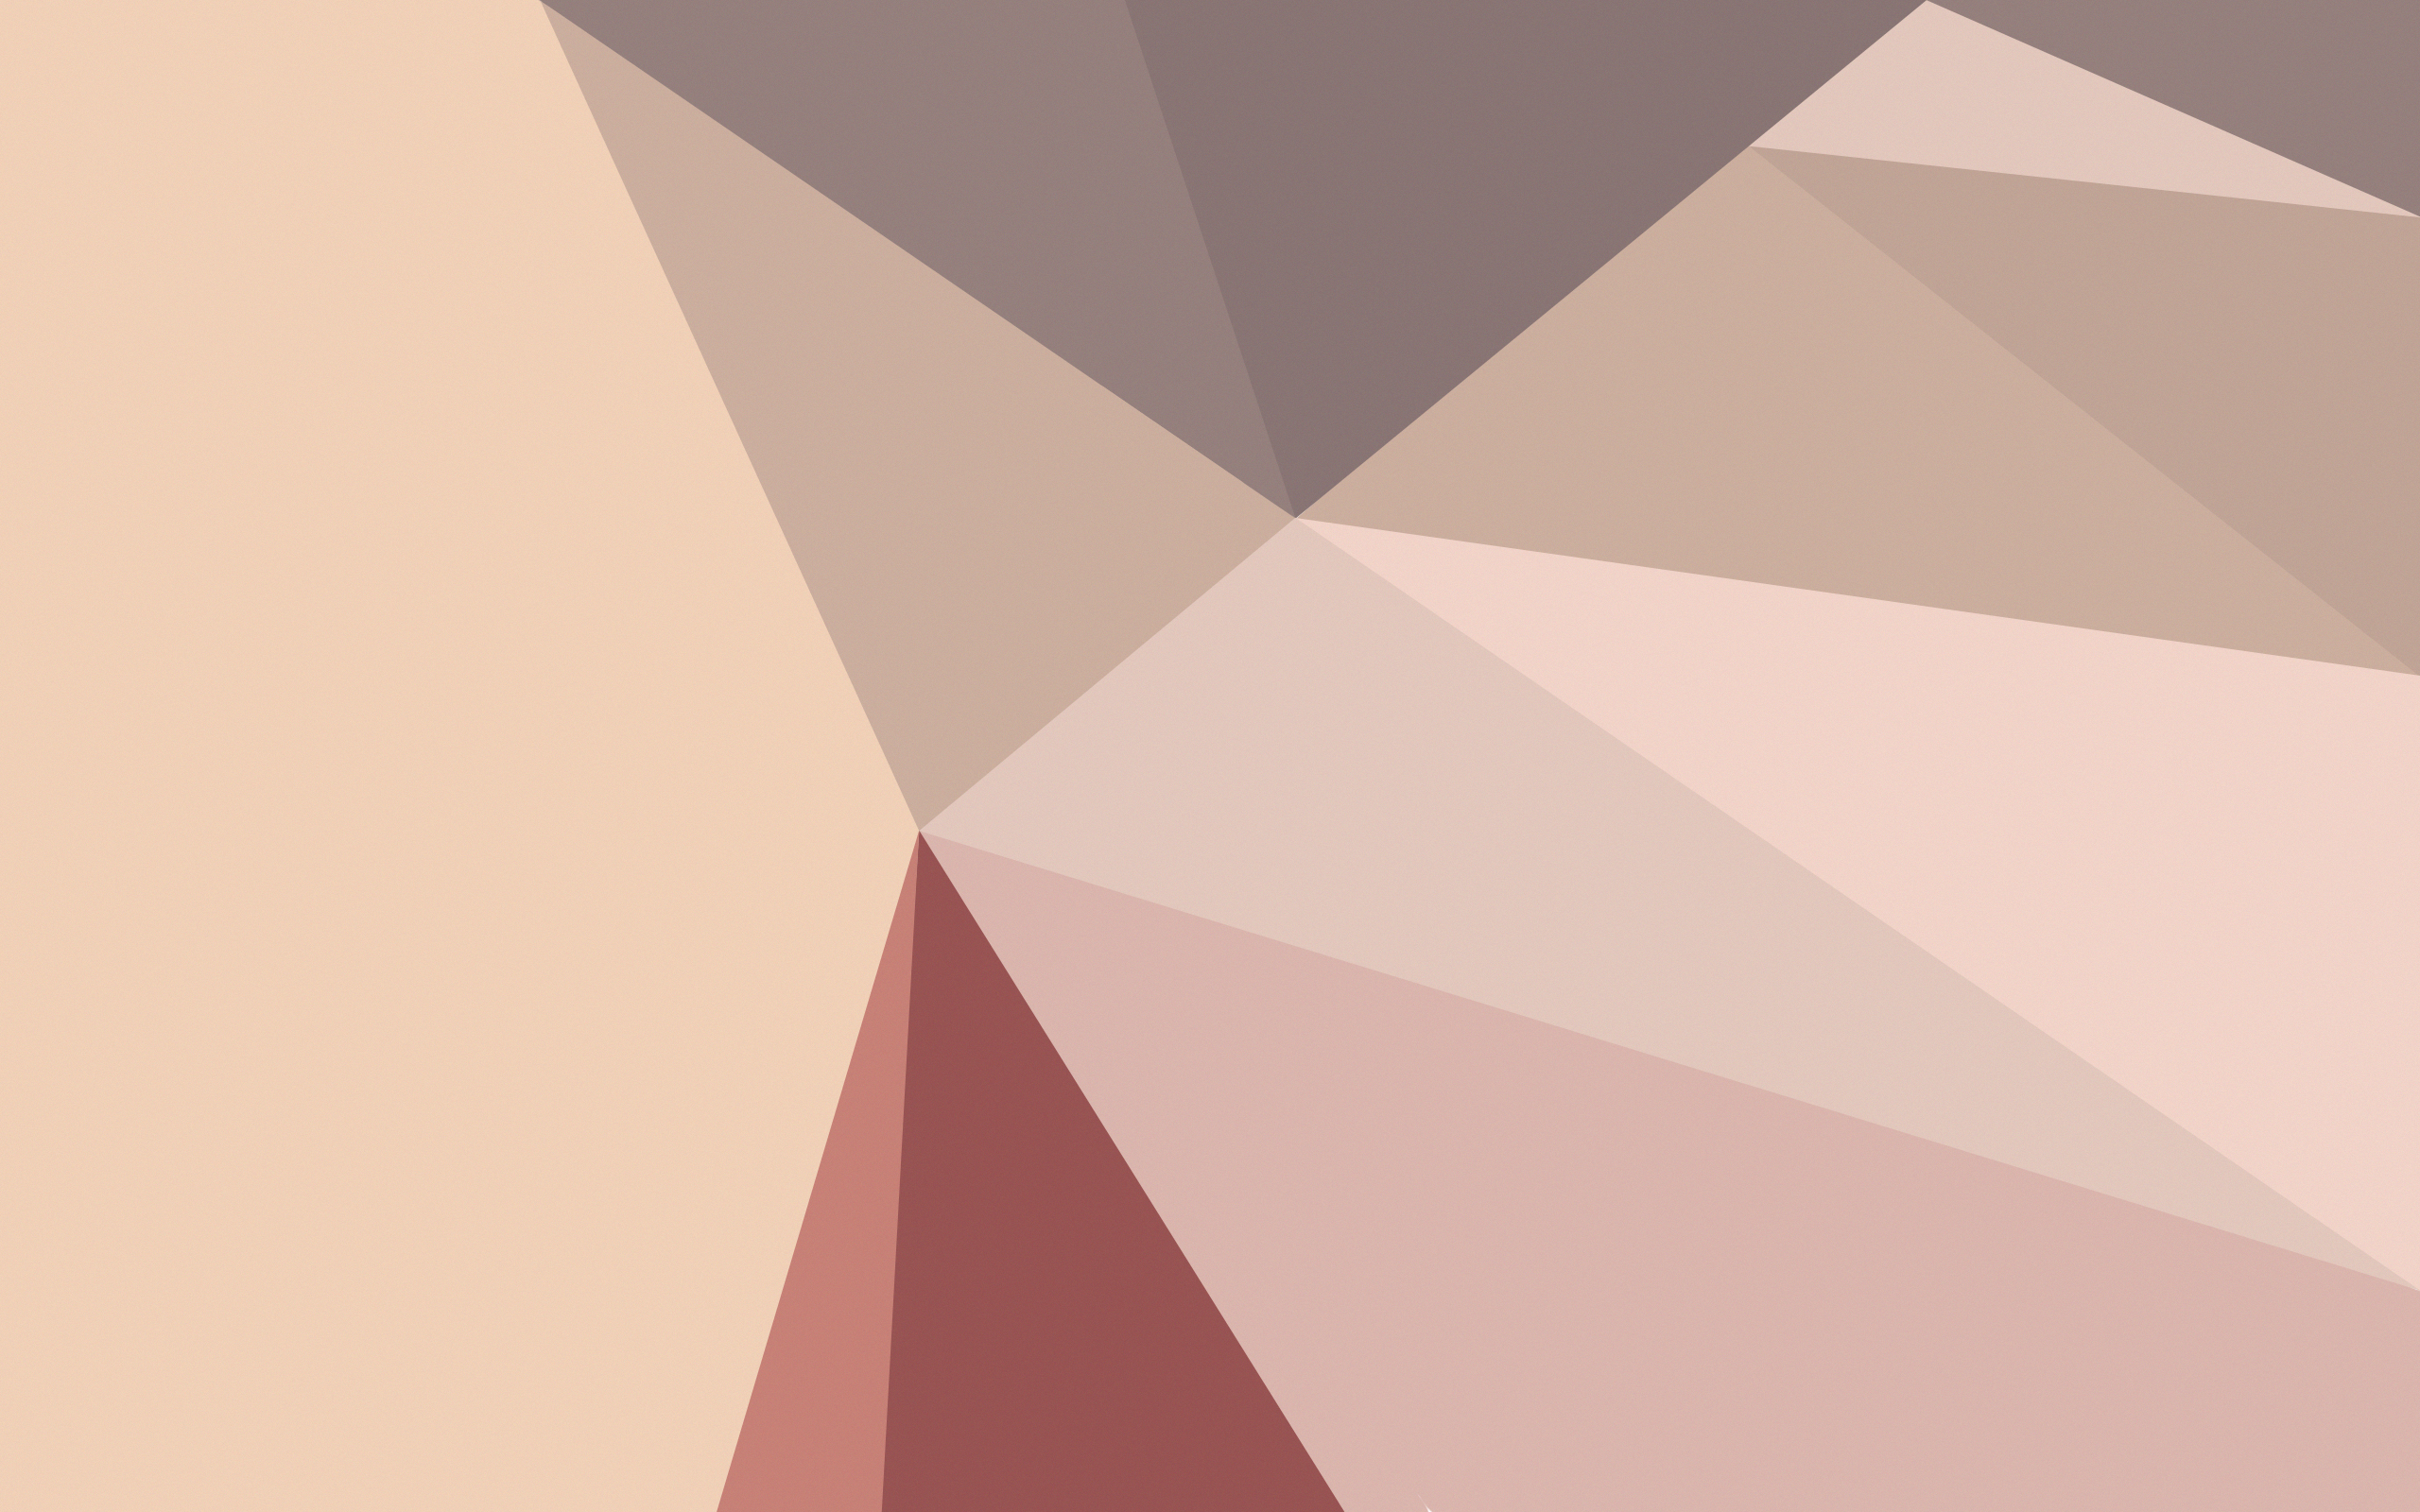 Stiutk by puscifer91, abstract, digital art, edges, lines, triangles, gray, gireses